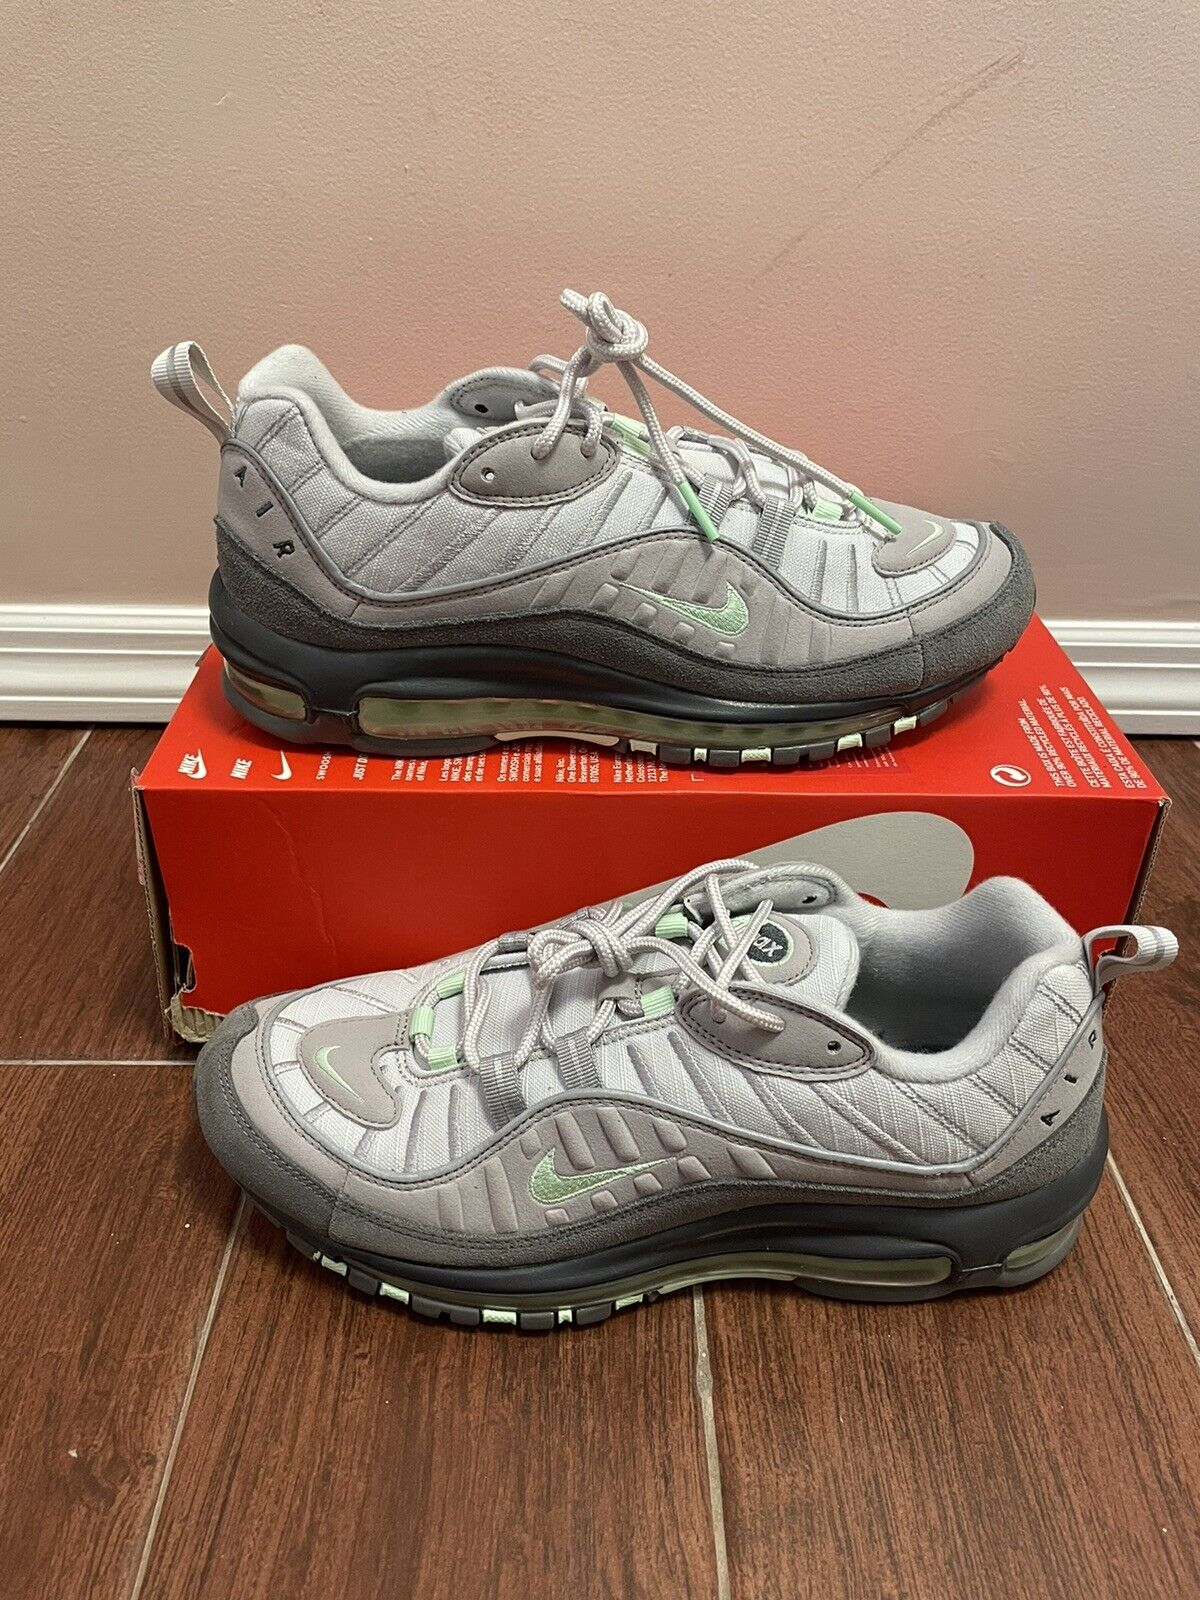 Size 8.5 - Nike Air Max 98 Vast Grey Mint for sale online   eBay